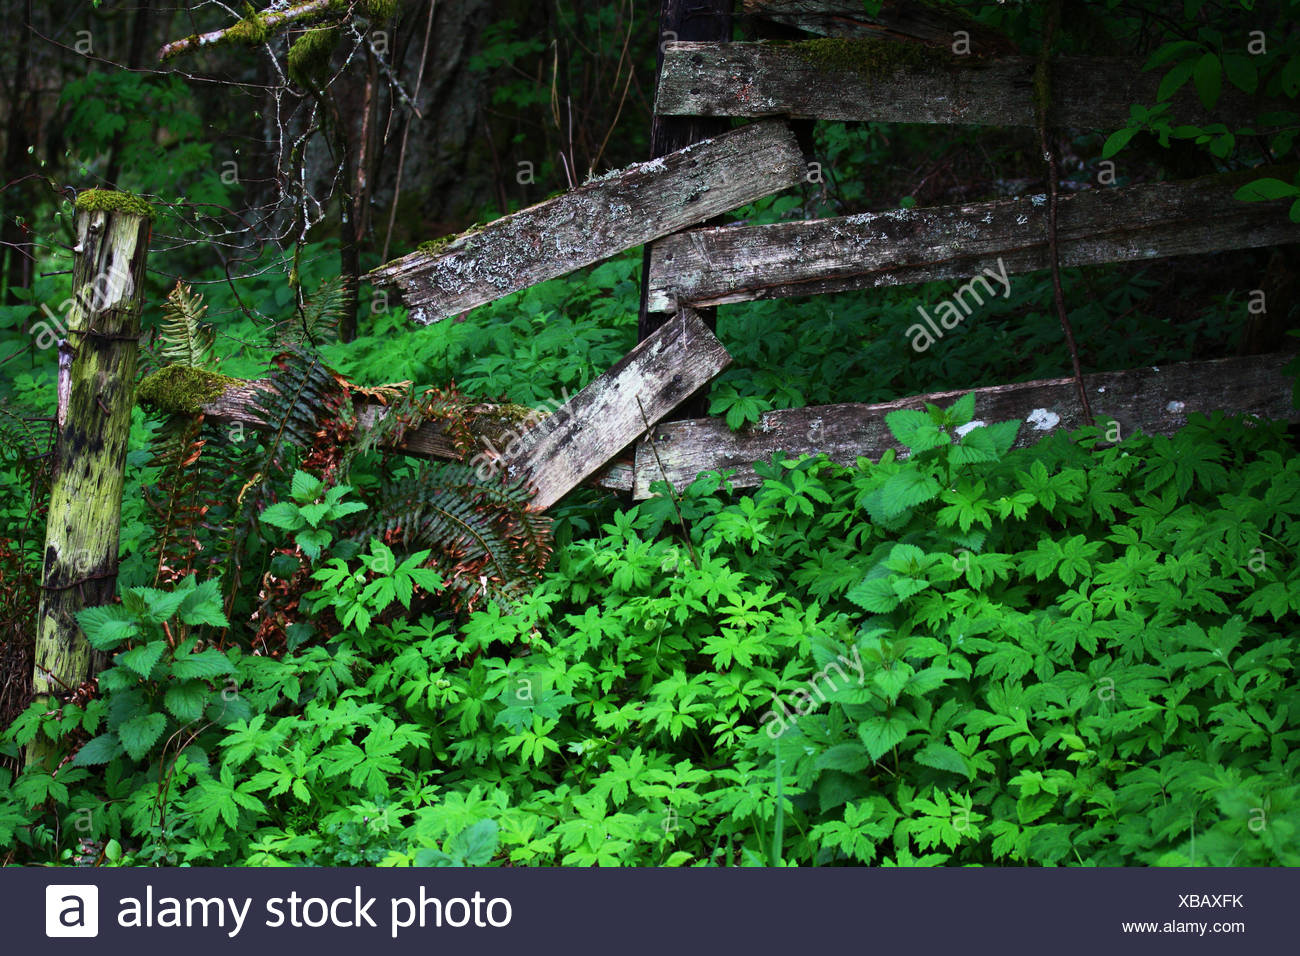 Fenced in - Stock Image